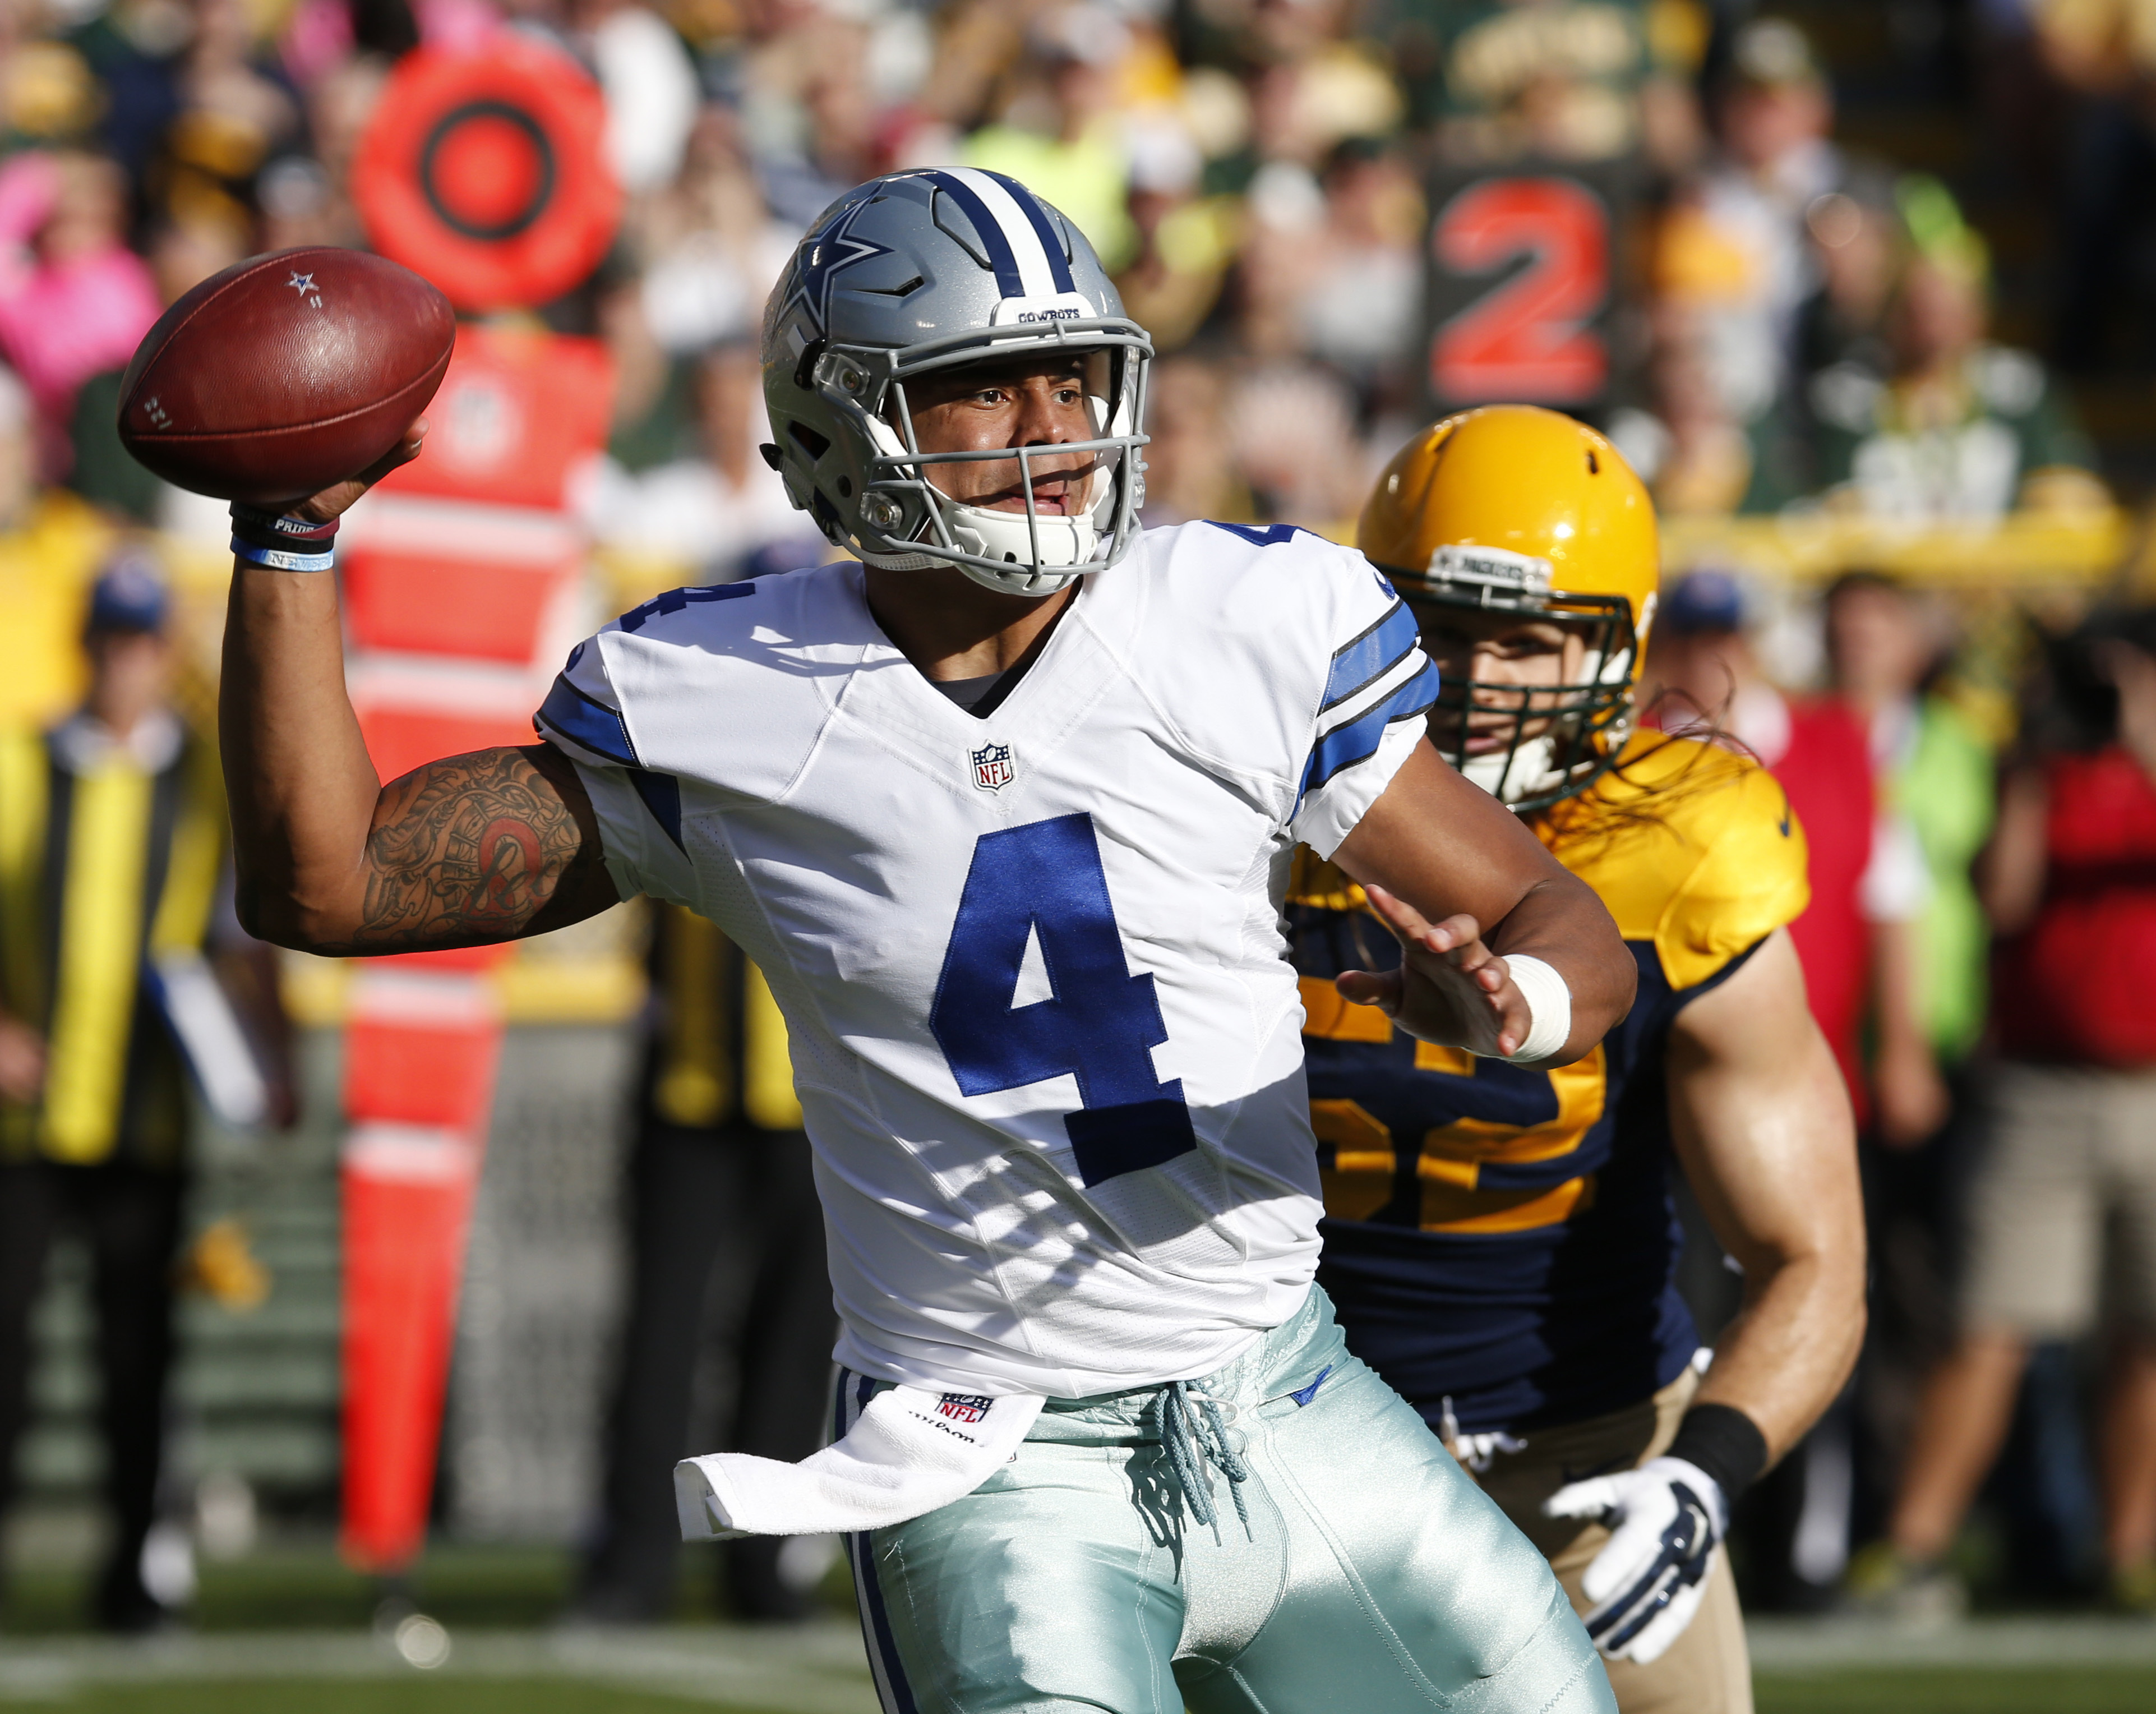 Dallas Cowboys' Dak Prescott throws during the first half of an NFL football game against the Green Bay Packers Sunday, Oct. 16, 2016, in Green Bay, Wis. (AP Photo/Mike Roemer)